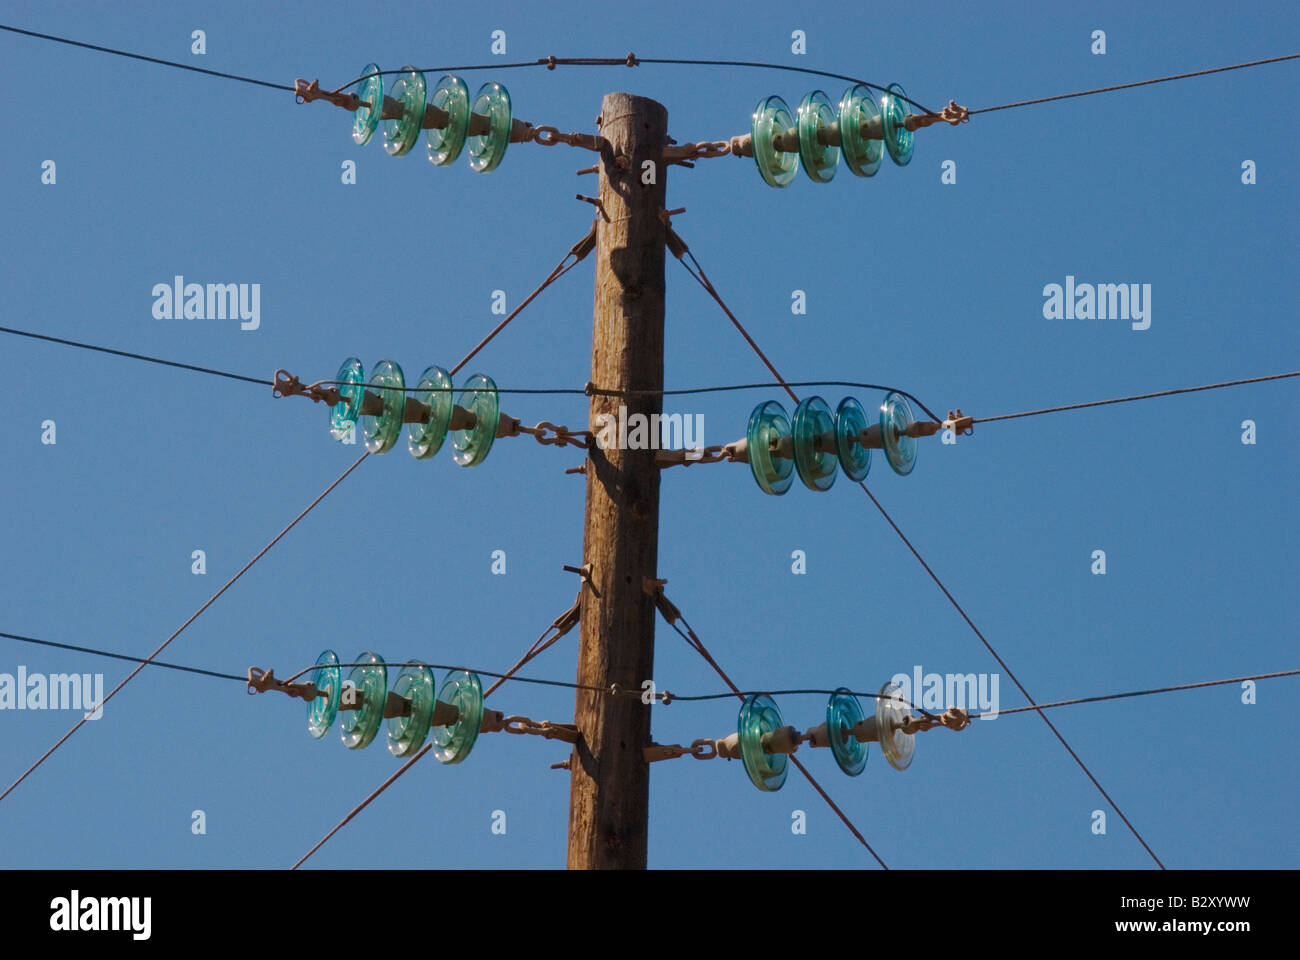 Glass insulators on electrical power lines in baja for Glass power line insulators